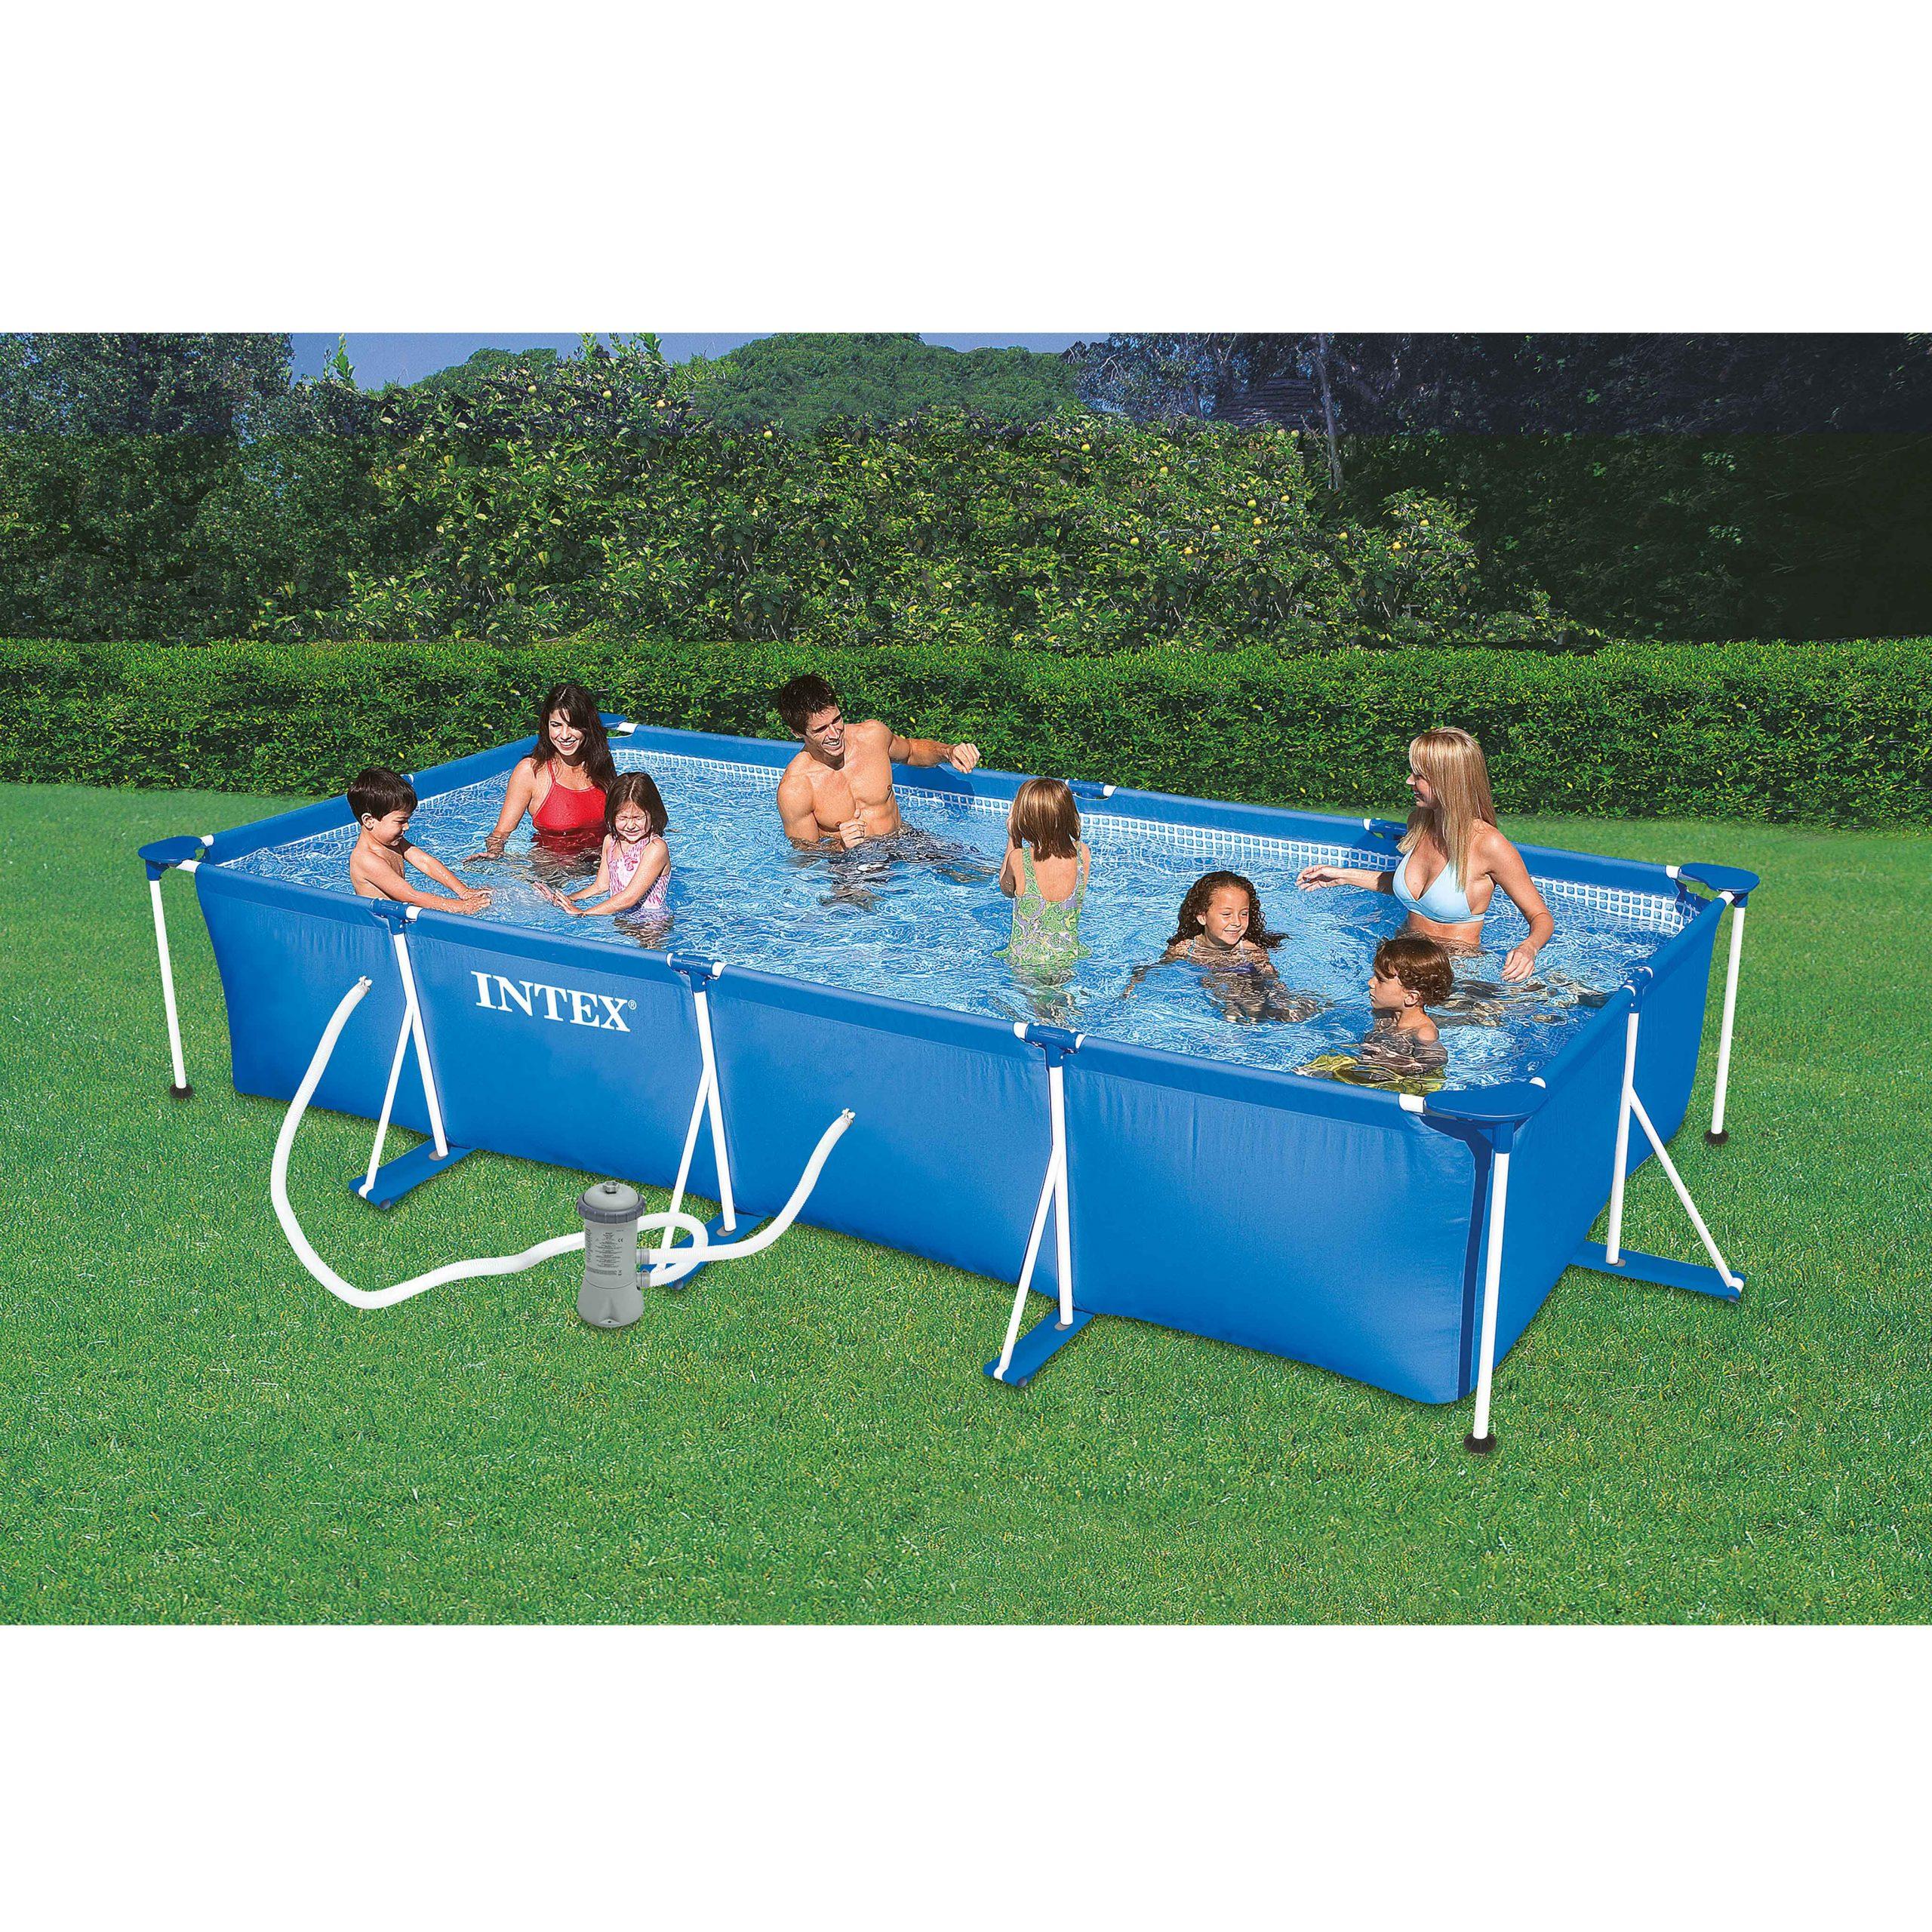 Piscine Tubulaire Rectangulaire 4,50 X 2,20 X 0,84 M Intex avec Piscine Hors Sol Intex Tubulaire